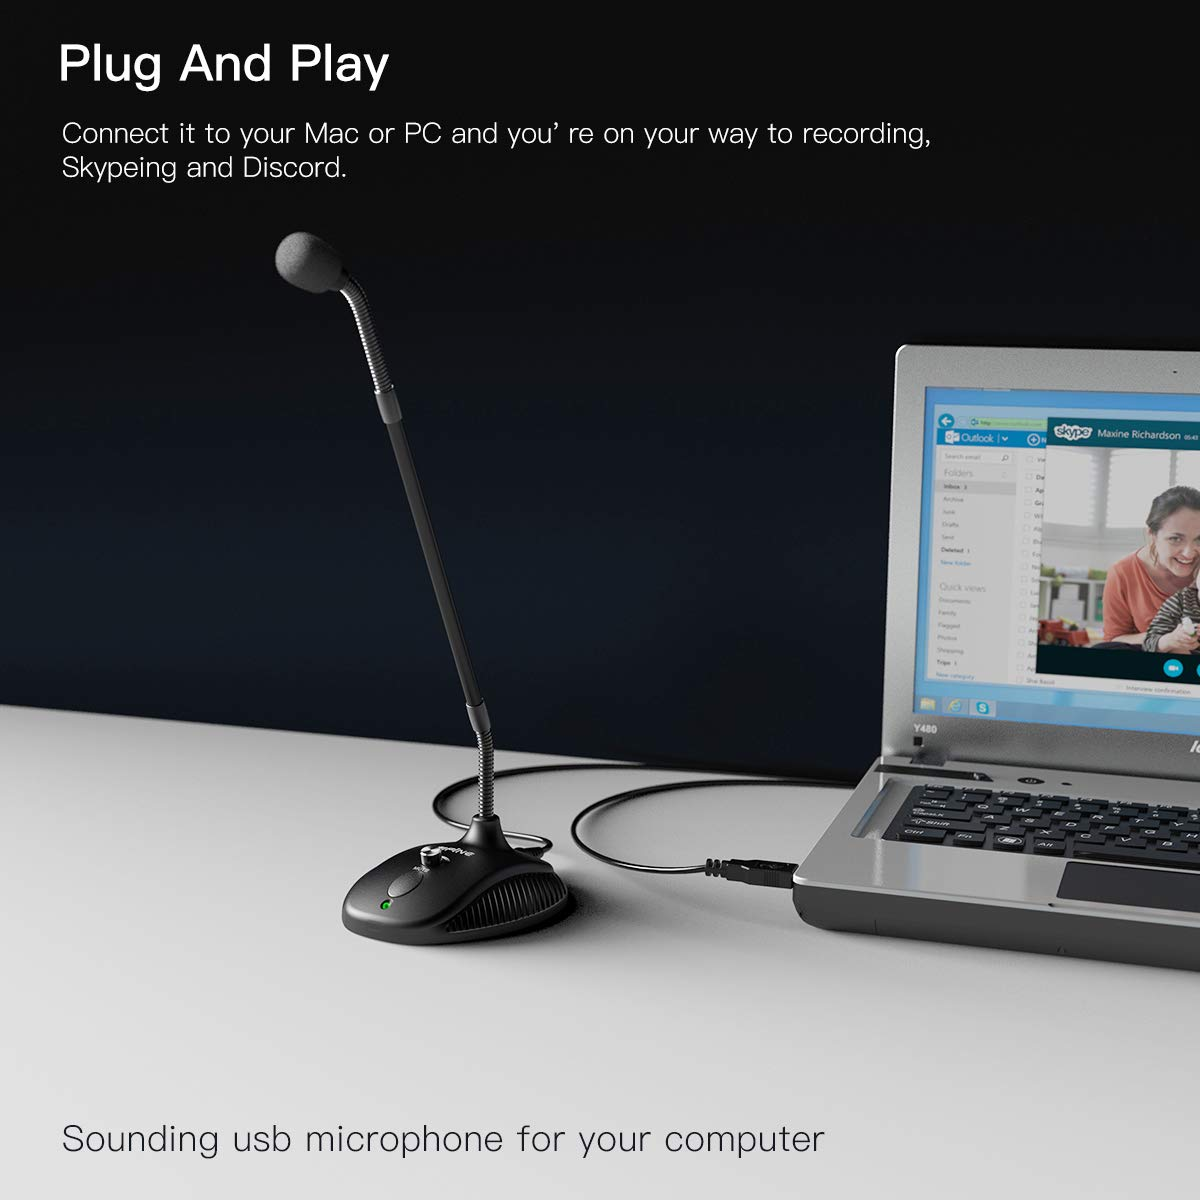 Computer Microphone,FIFINE Desktop Gooseneck Microphone,Mute Button with LED Indicator,USB Microphone for Windows/Mac.Ideal for Gaming Streaming YouTube Podcast.(K052) by FIFINE TECHNOLOGY (Image #6)